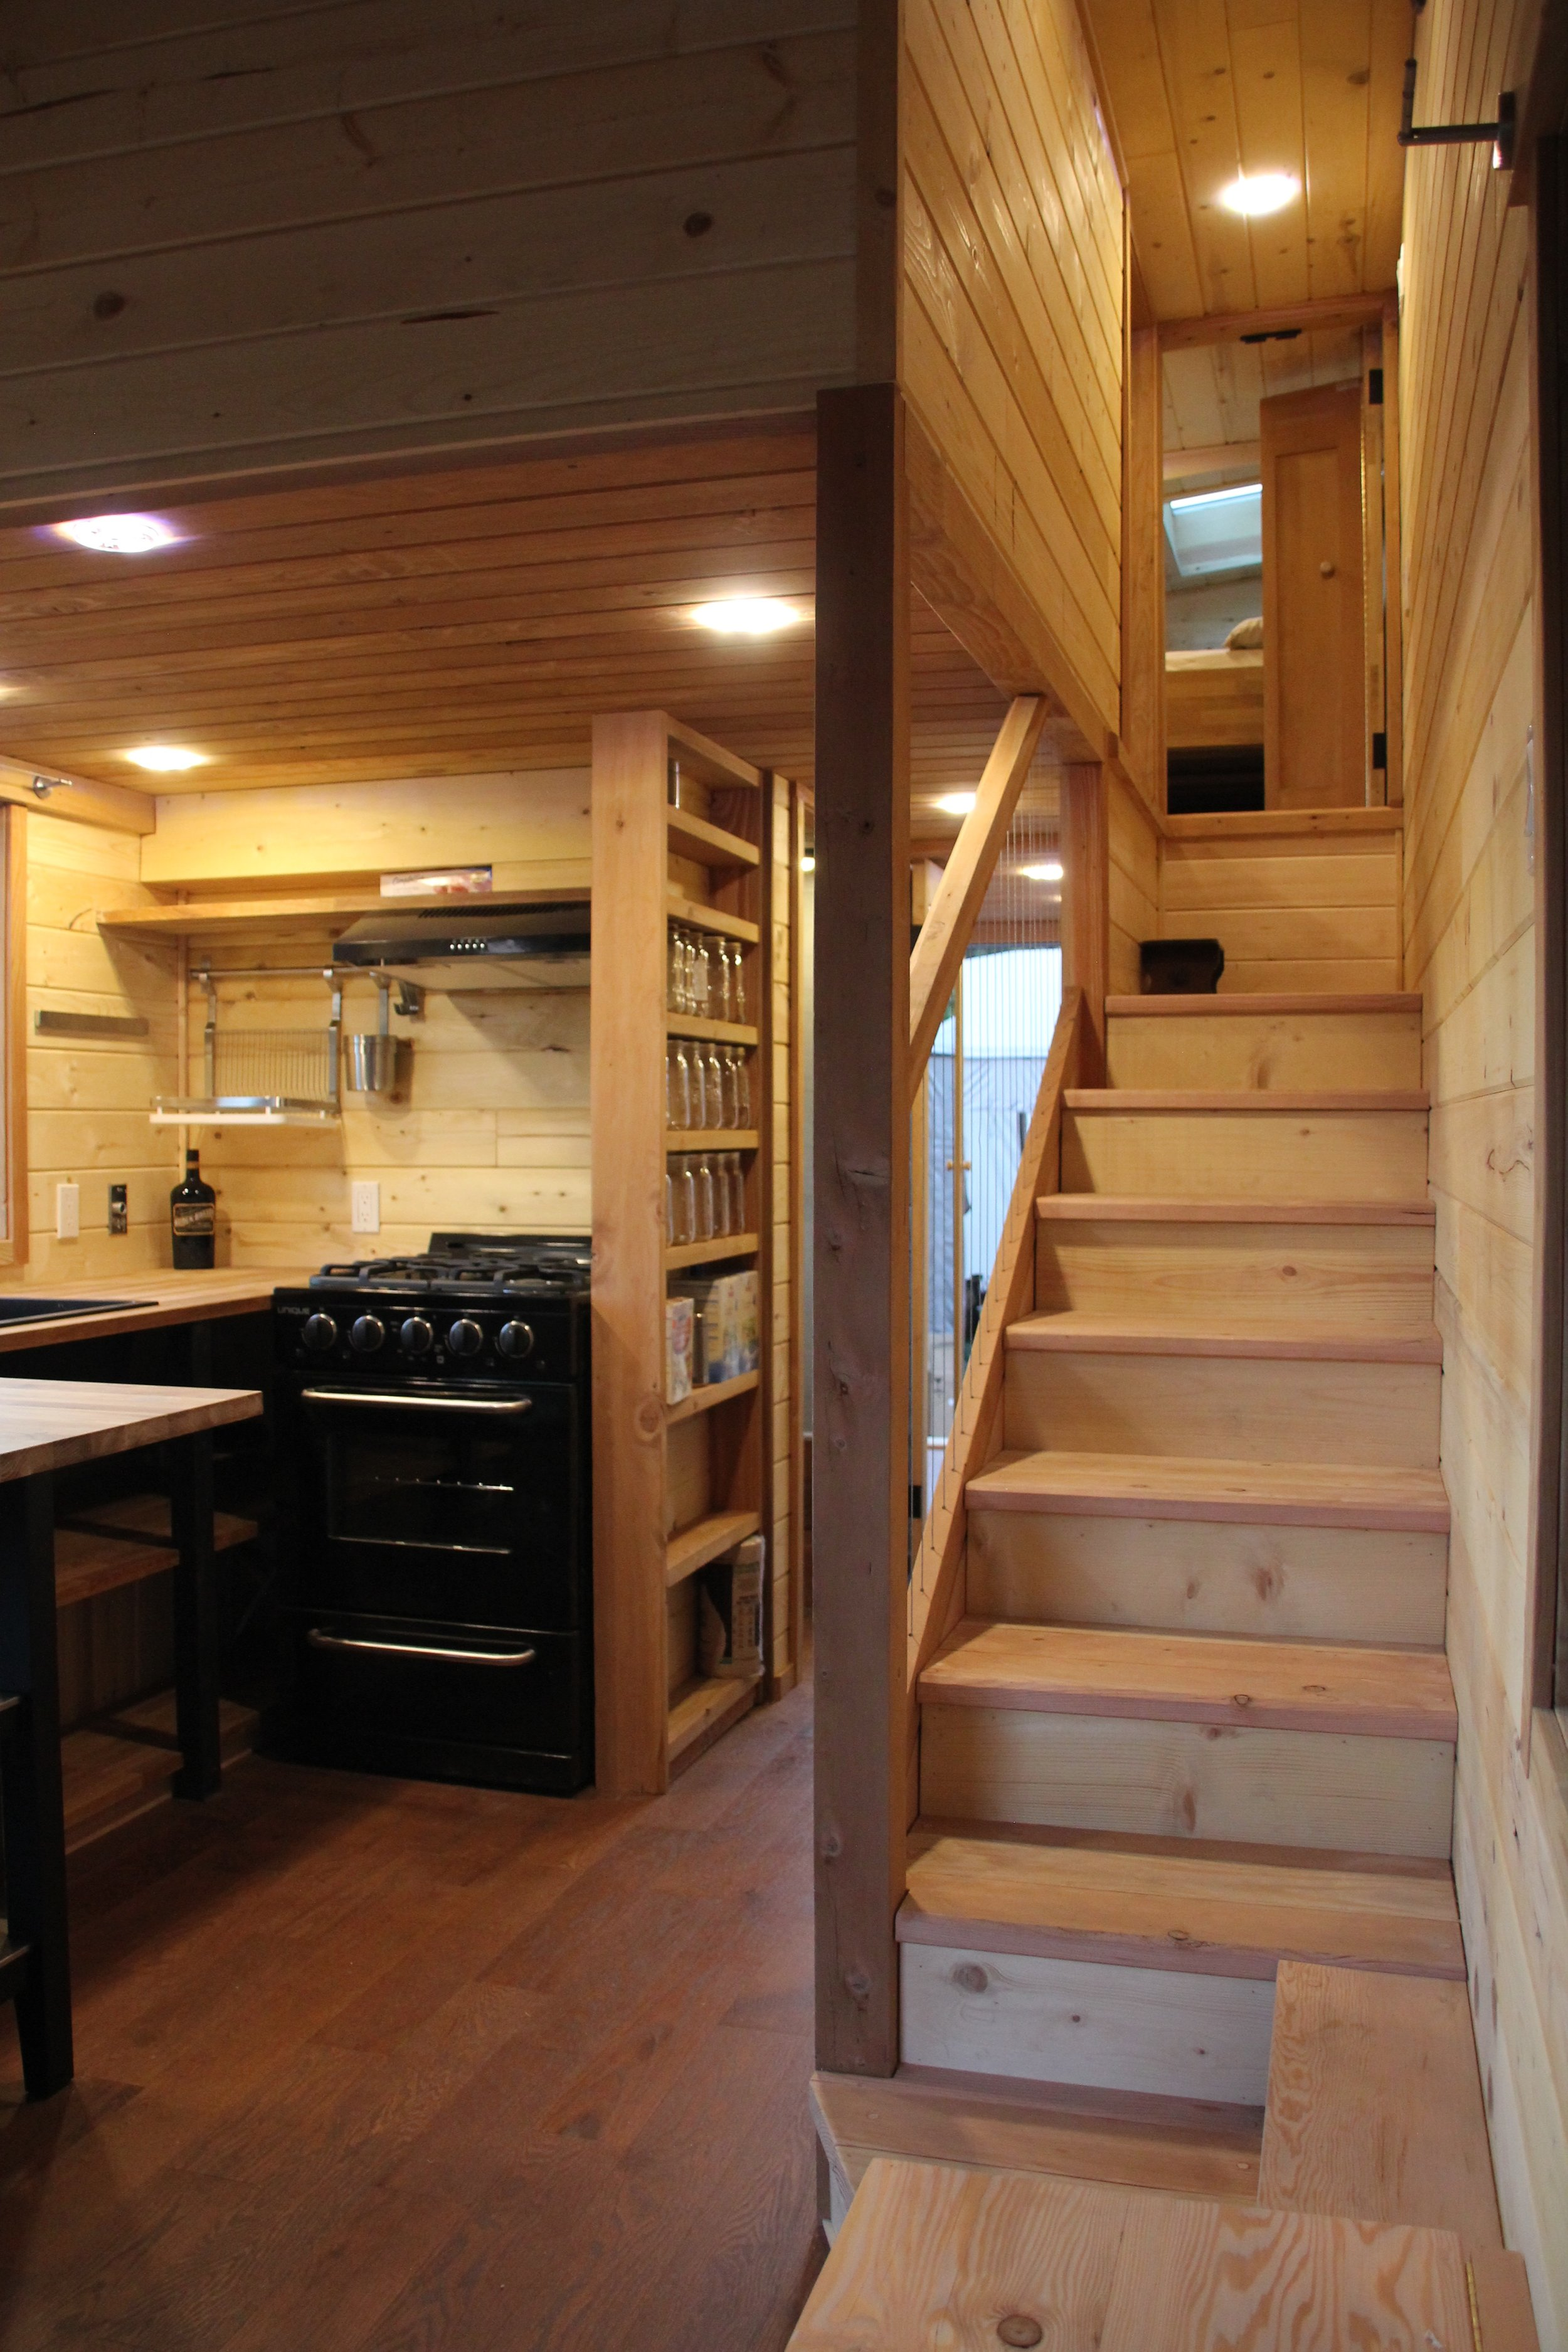 The moveable peninsula and custom shelving add to the functionality of the kitchen.